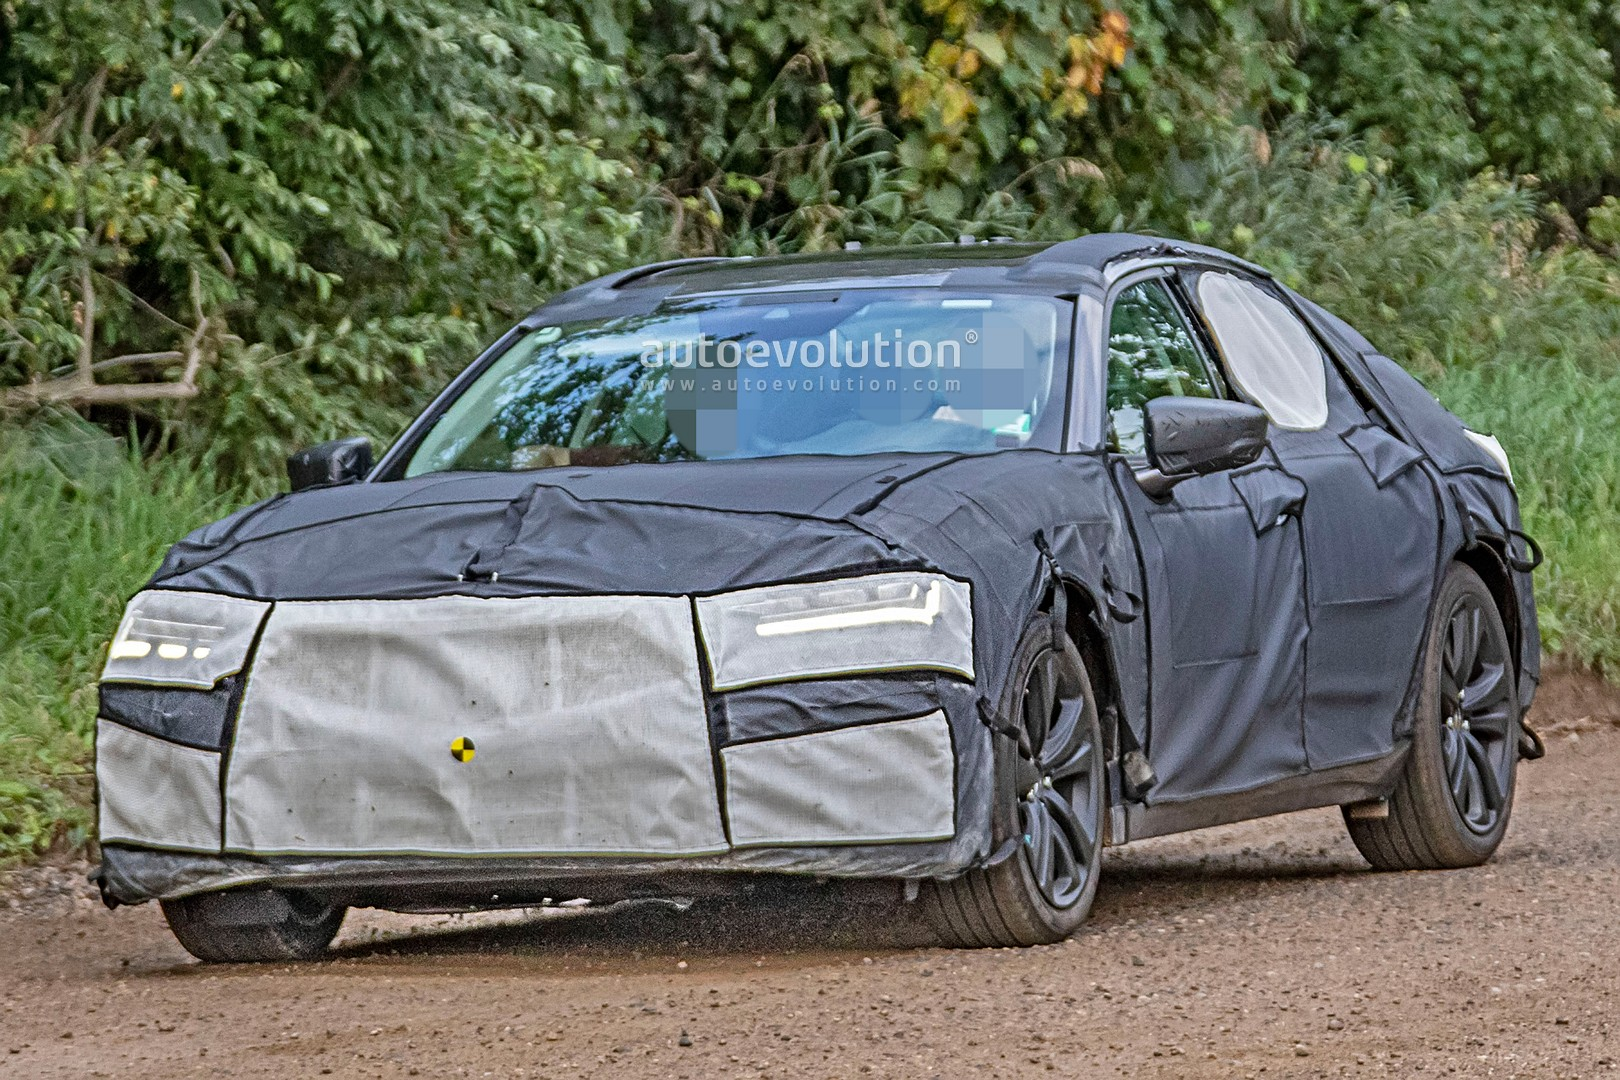 2021 Acura Tlx Sedan Spied Testing Looks Like Type S